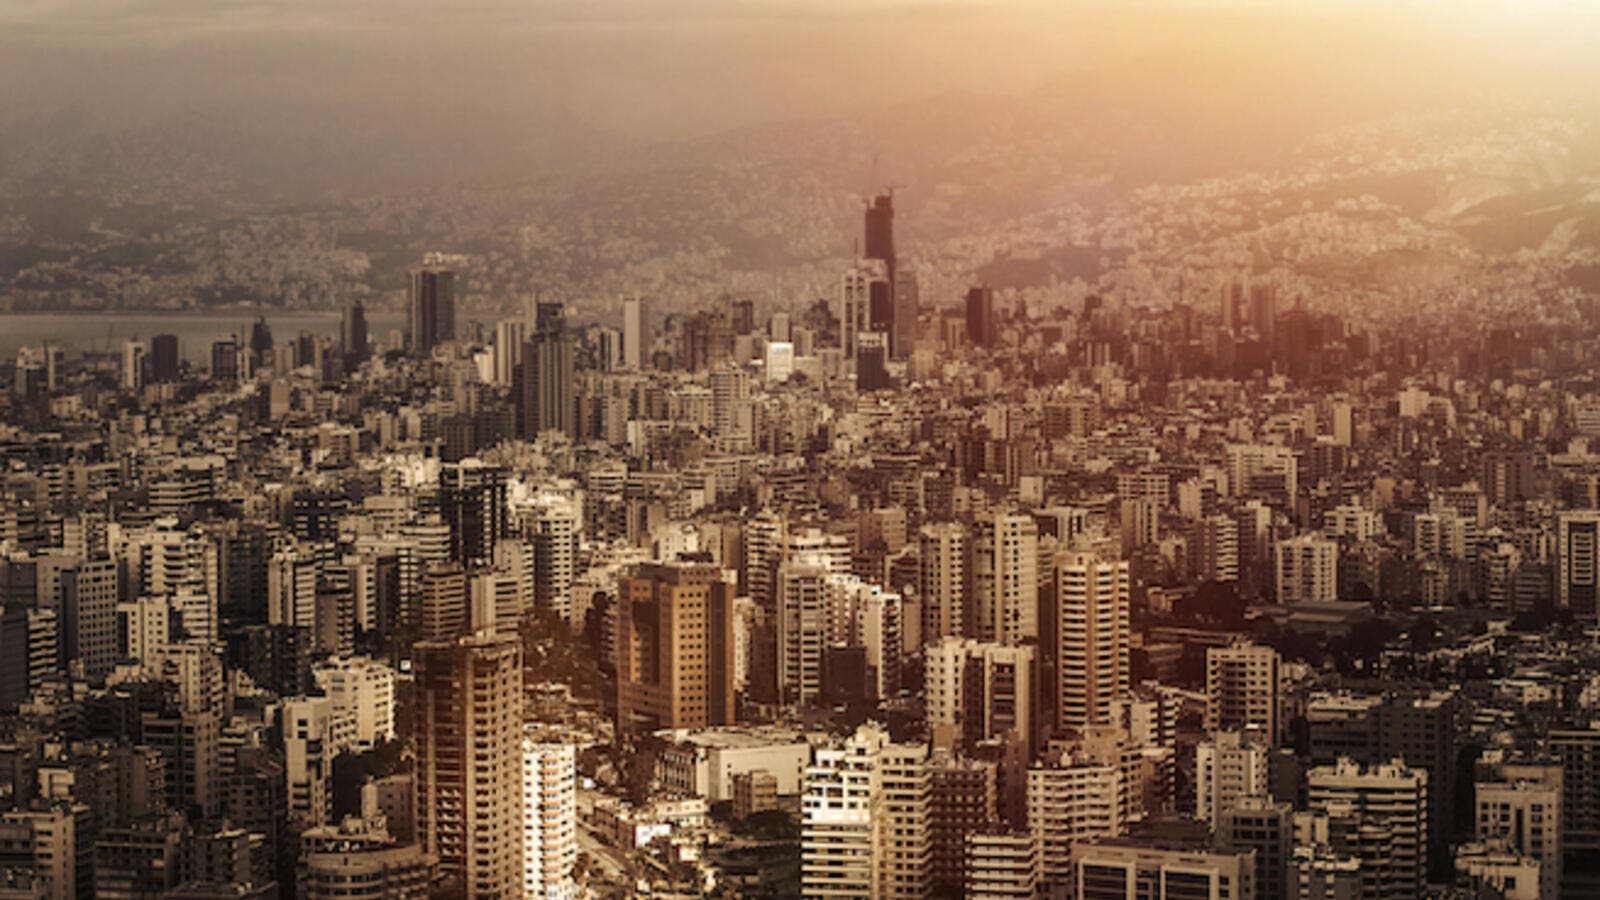 The slump may have started in luxury properties, but it has filtered down as Lebanon's stagnant economy and government vacuum weighs on confidence and spending power. (Shutterstock)